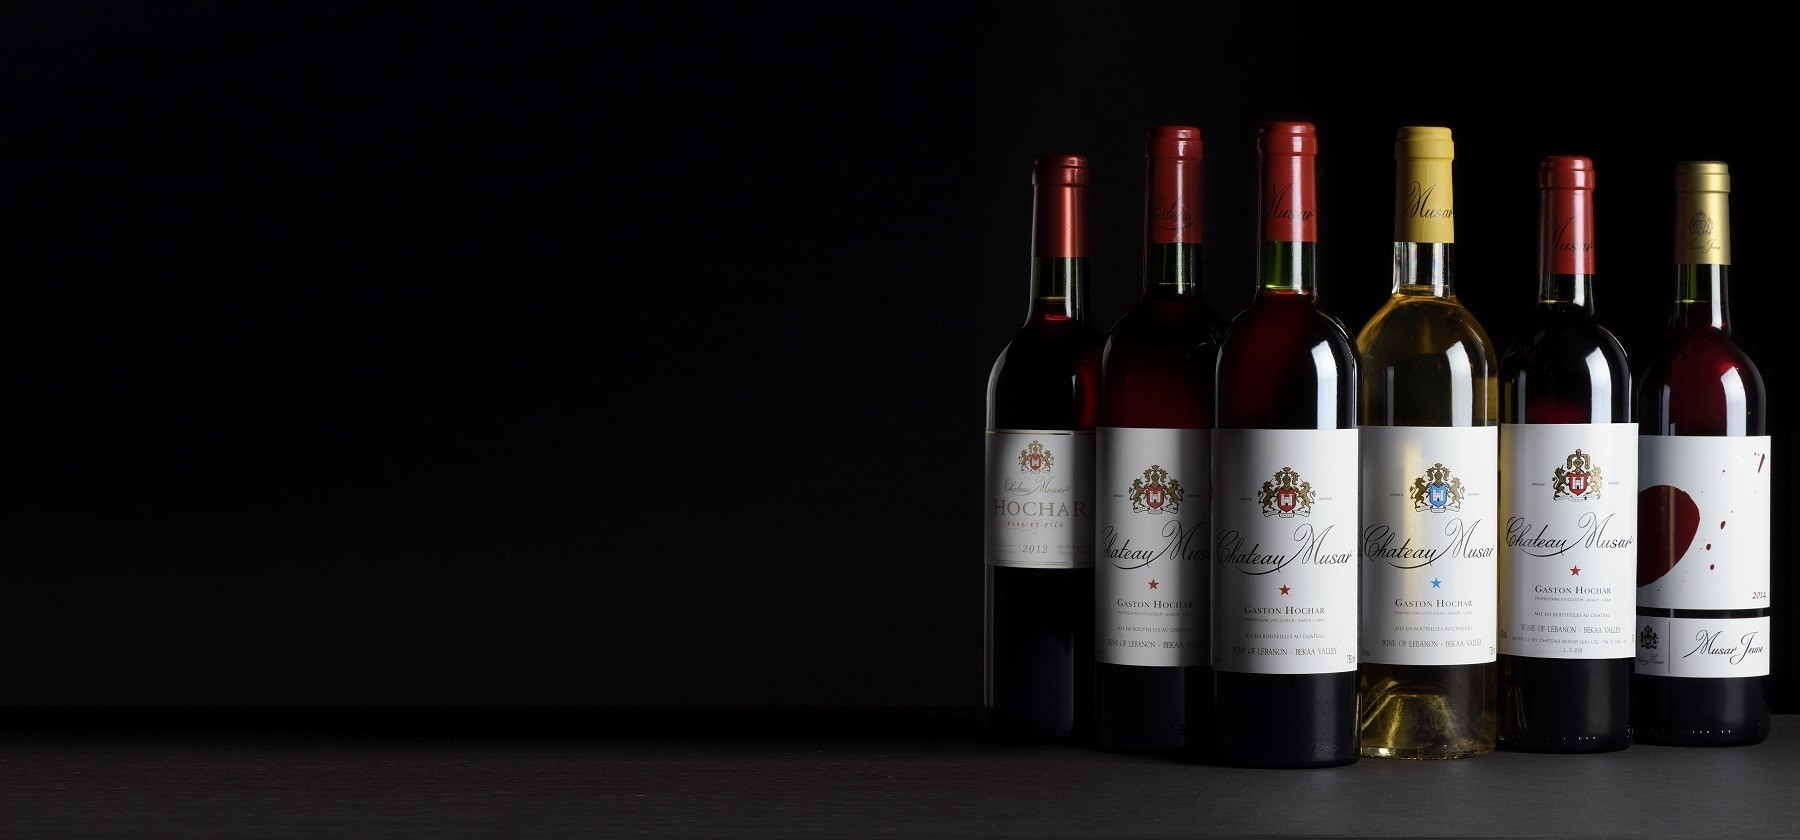 Chateau Musar A spectacular offer from...